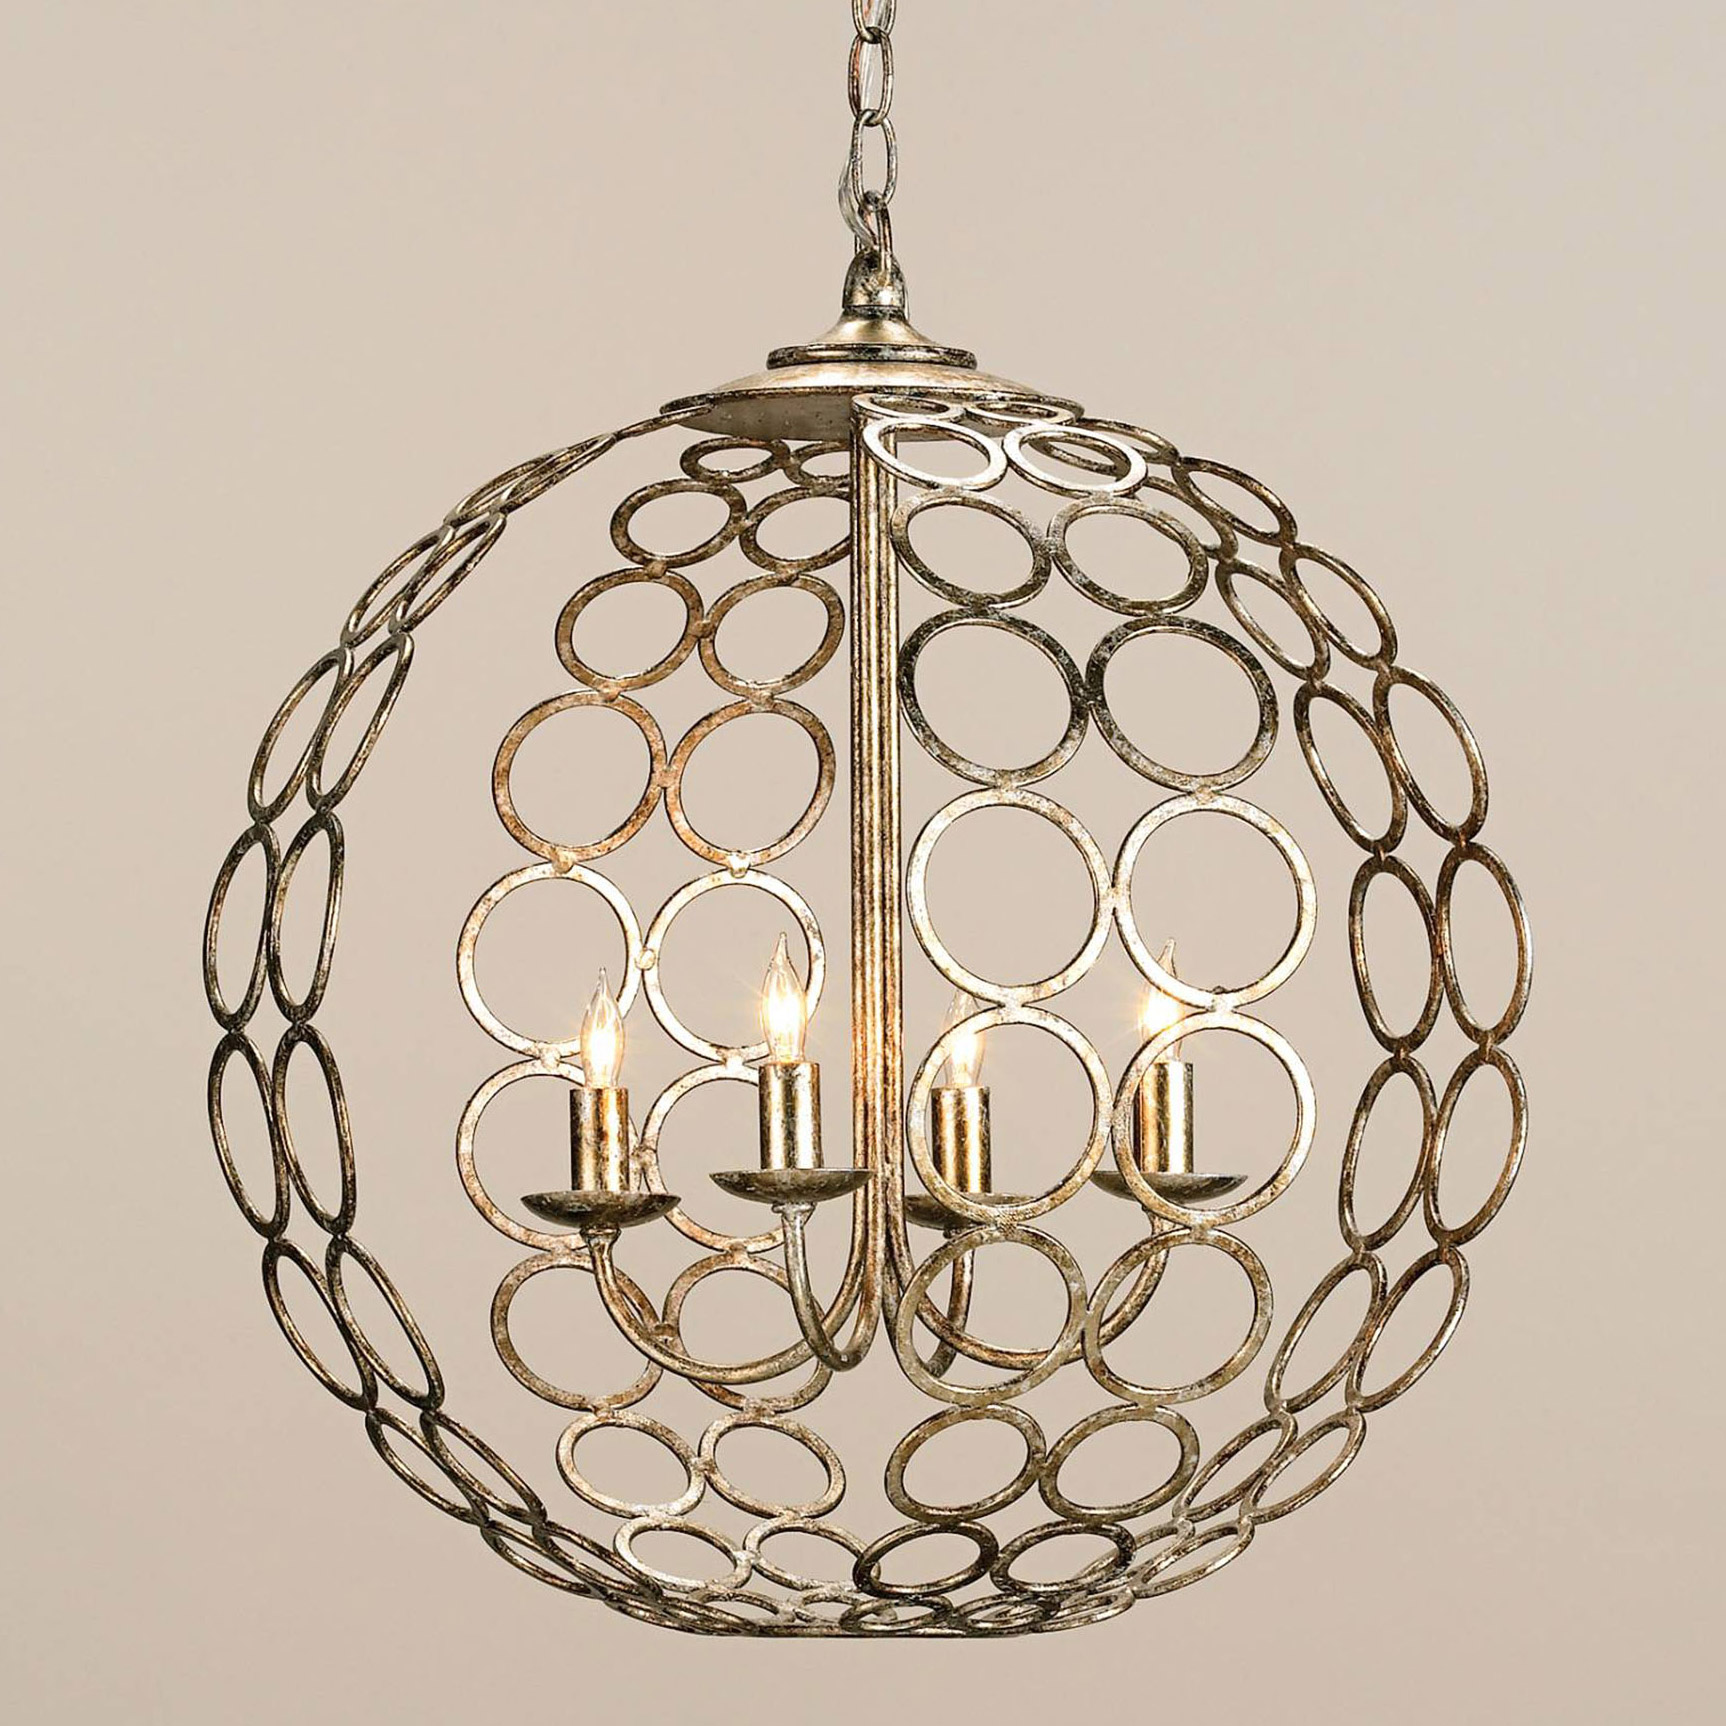 artisans to our metal pin we proud chandeliers crafted re finely orb exclusive by present chandelier